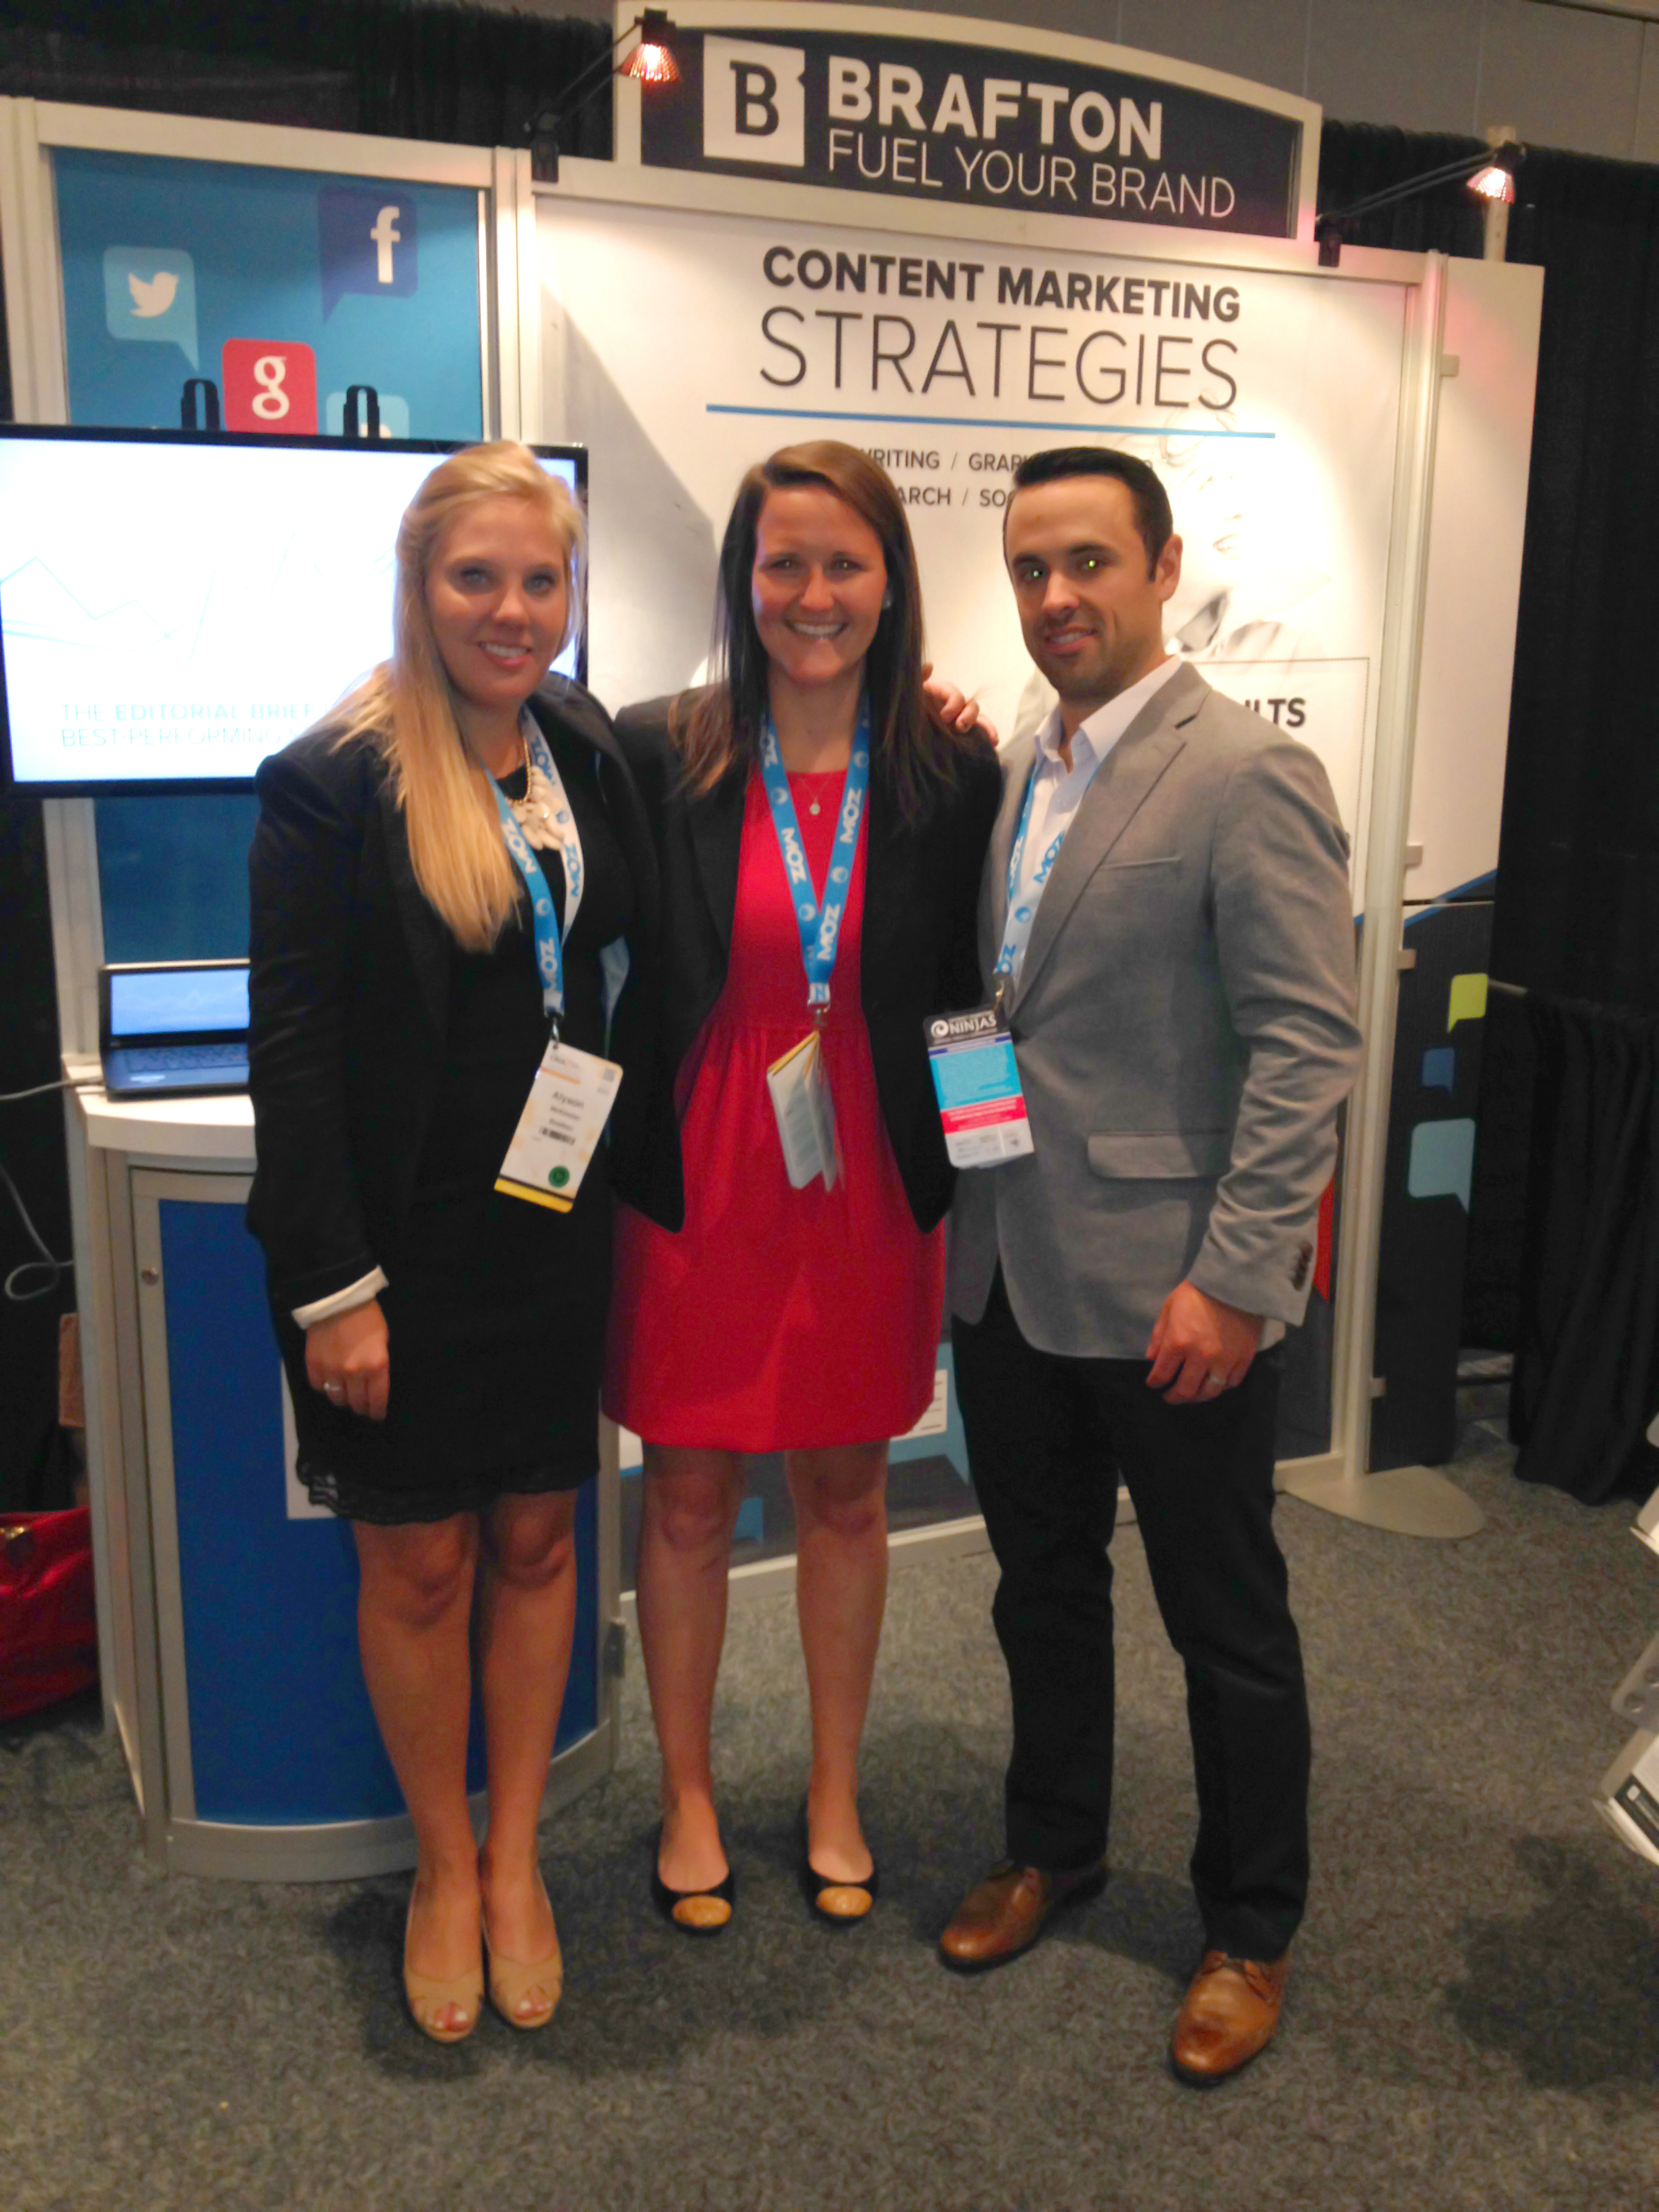 Brafton's team at last year's ClickZ Live event